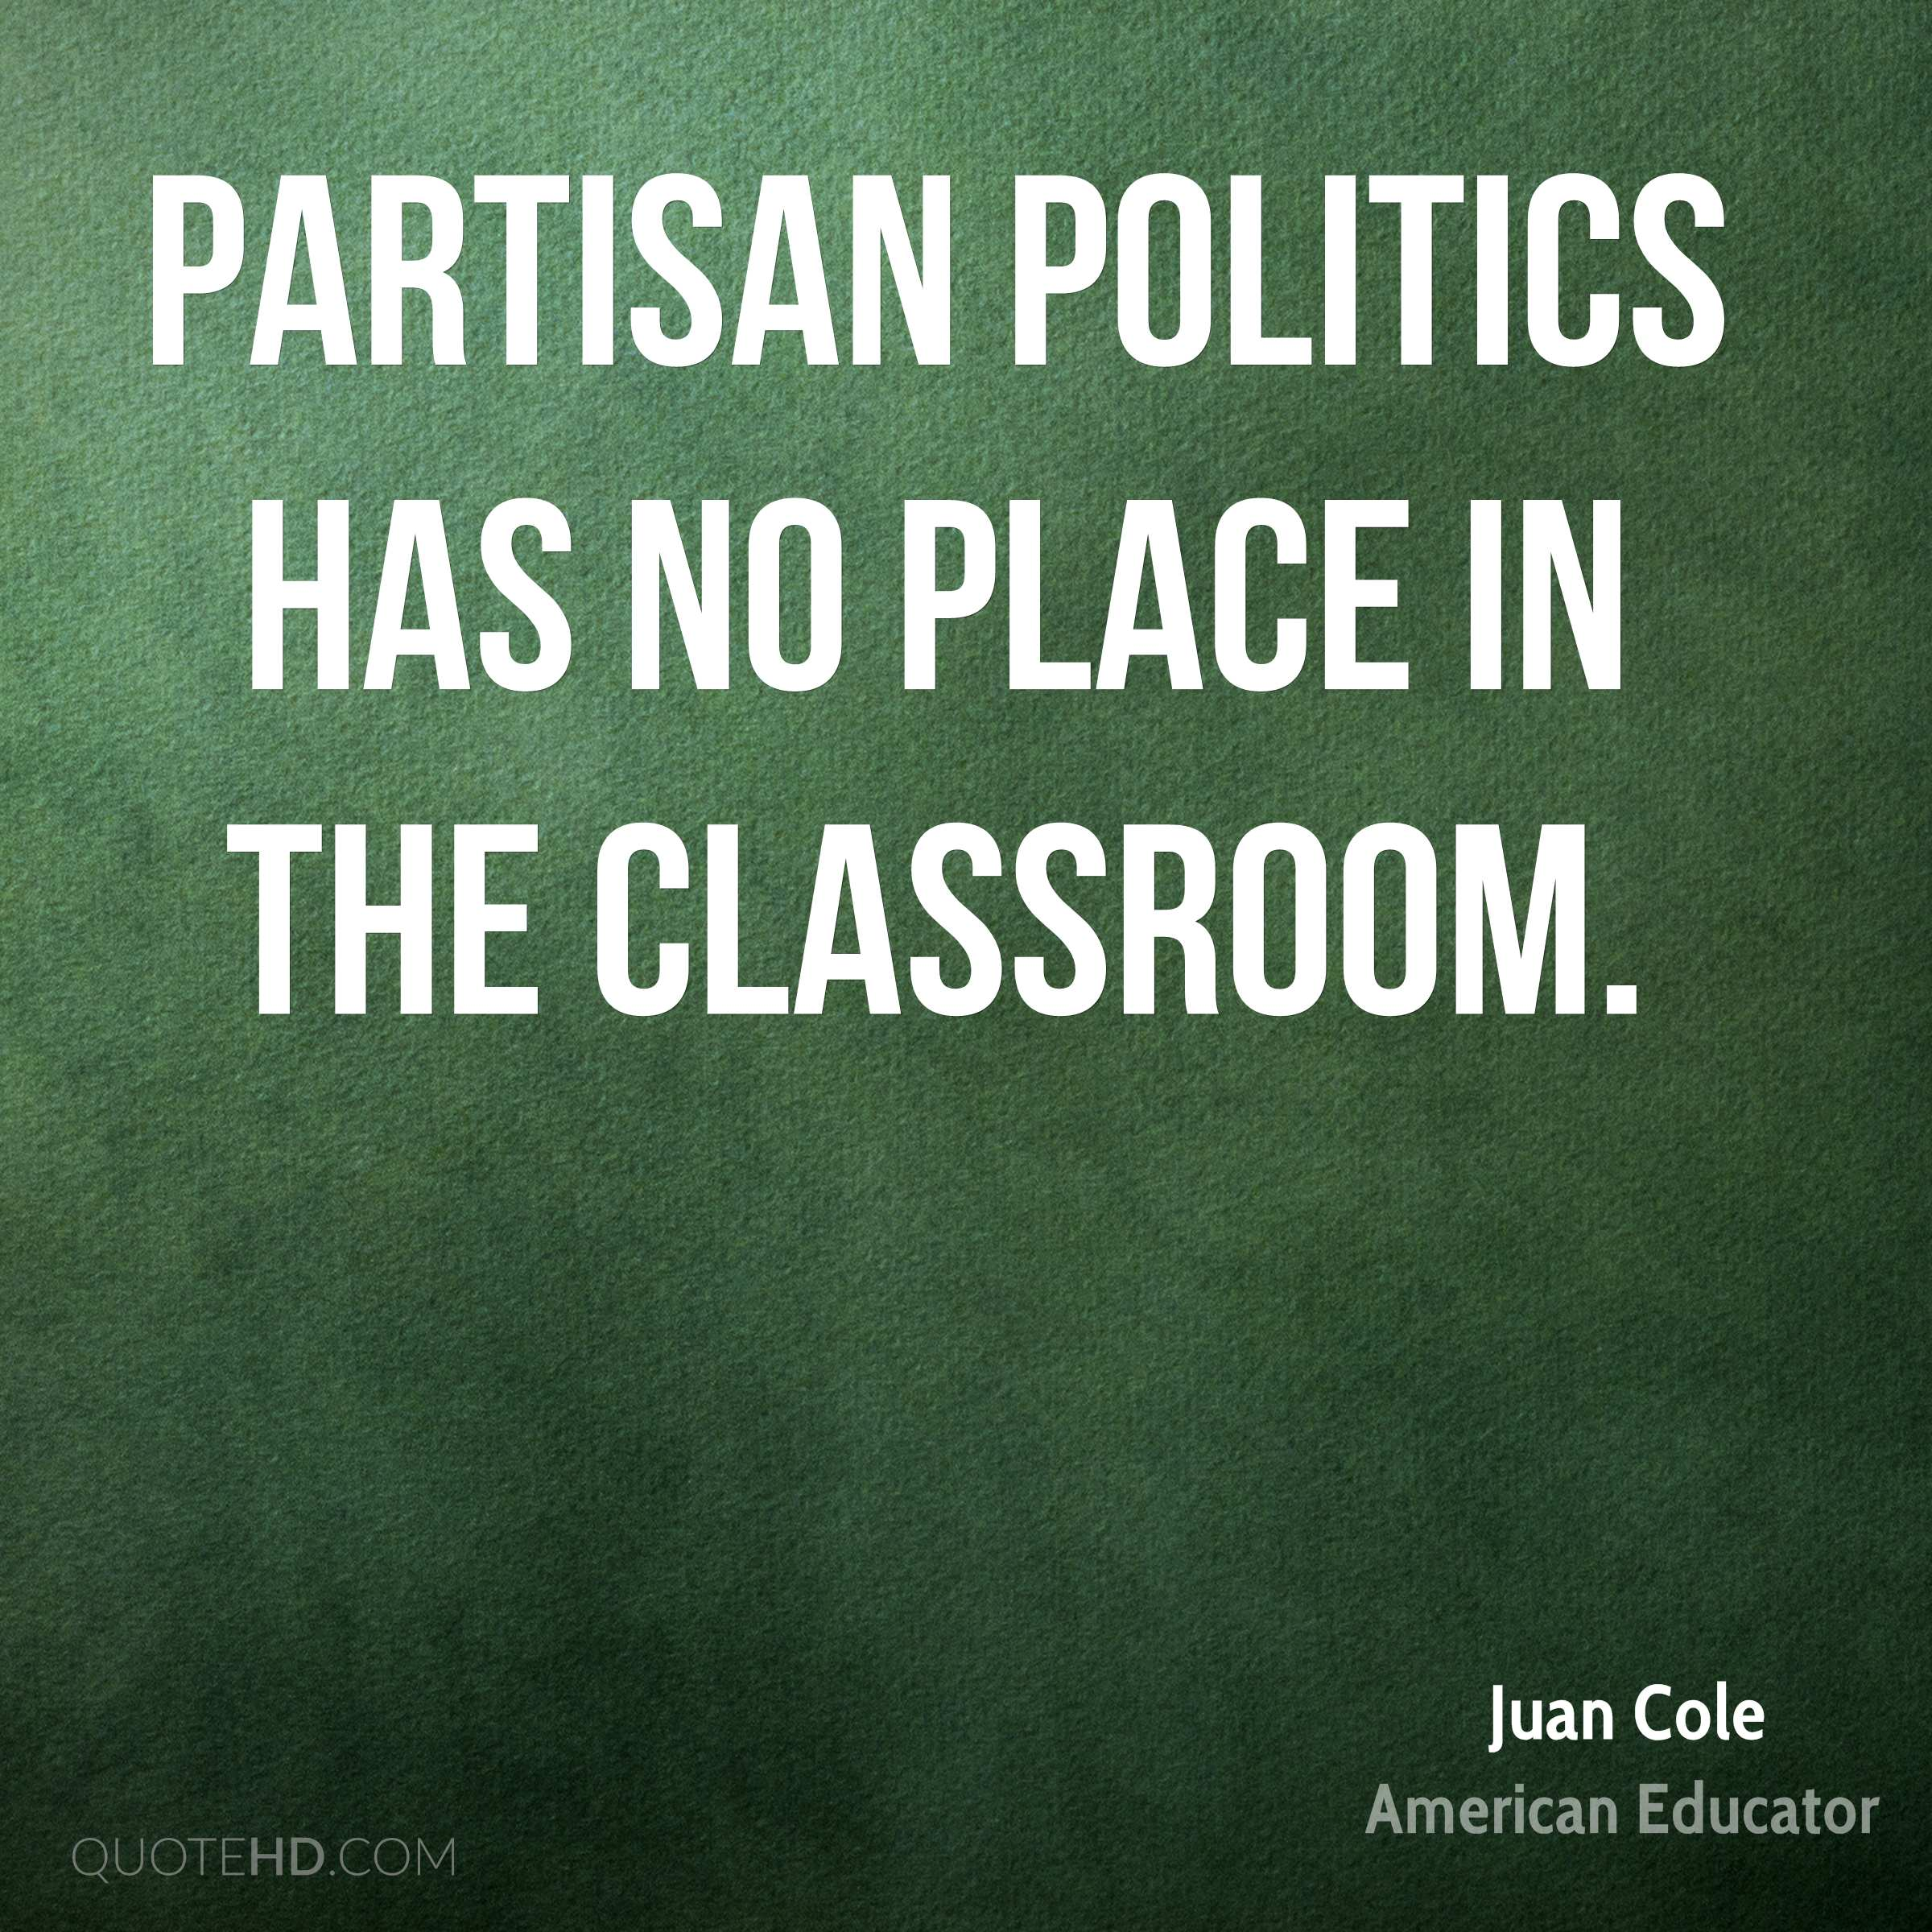 Partisan politics has no place in the classroom.